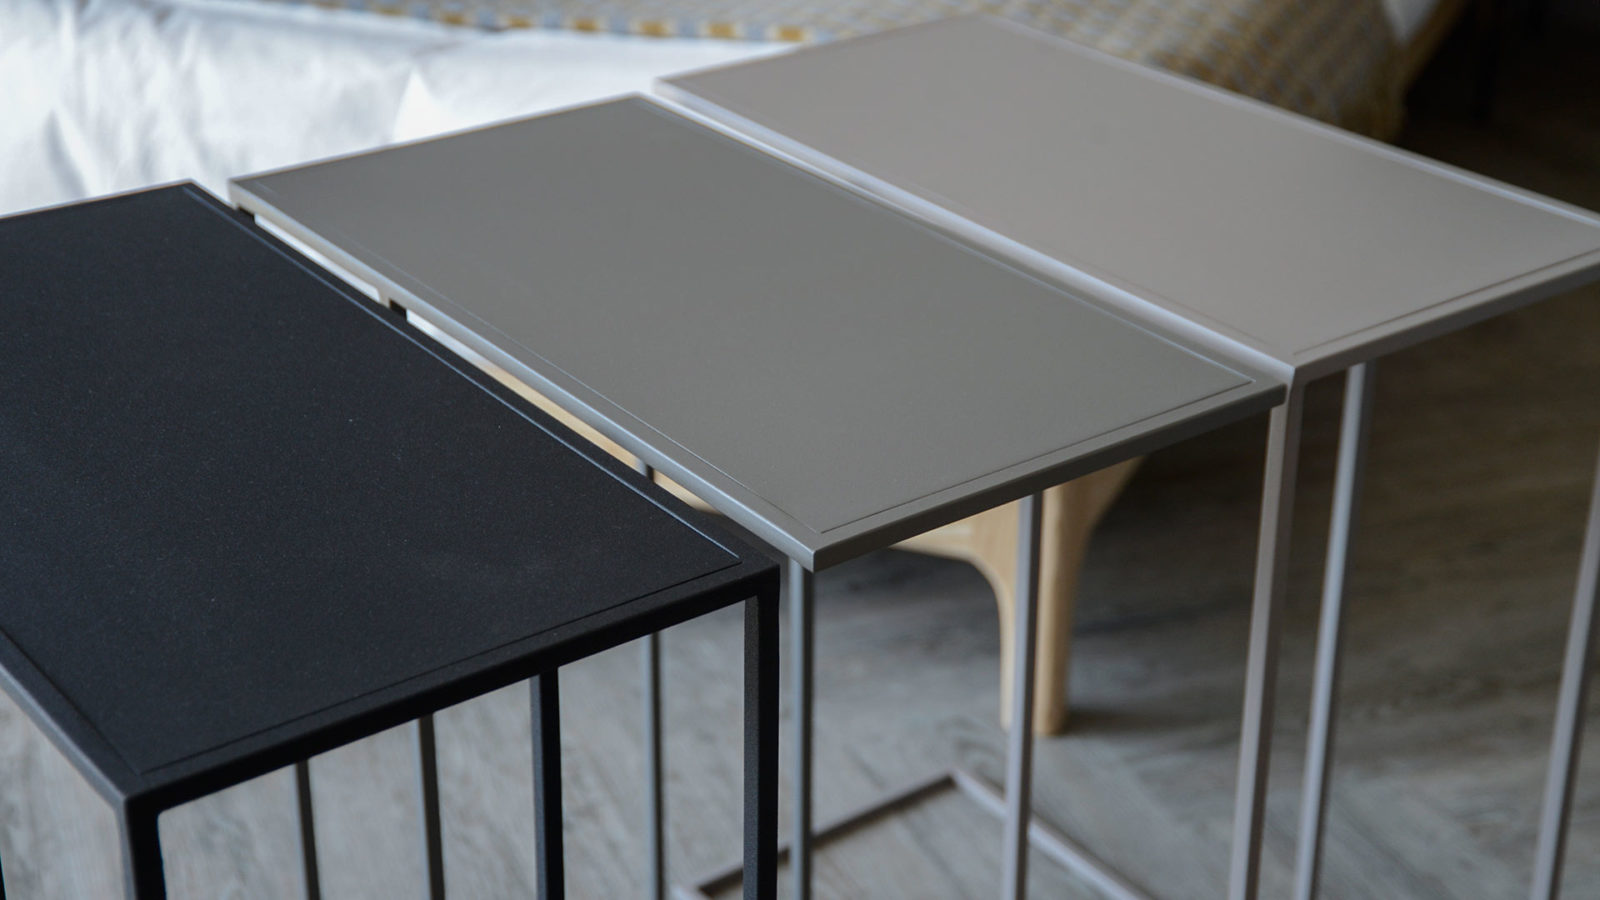 metal, powder coated side tables in 3 colour options